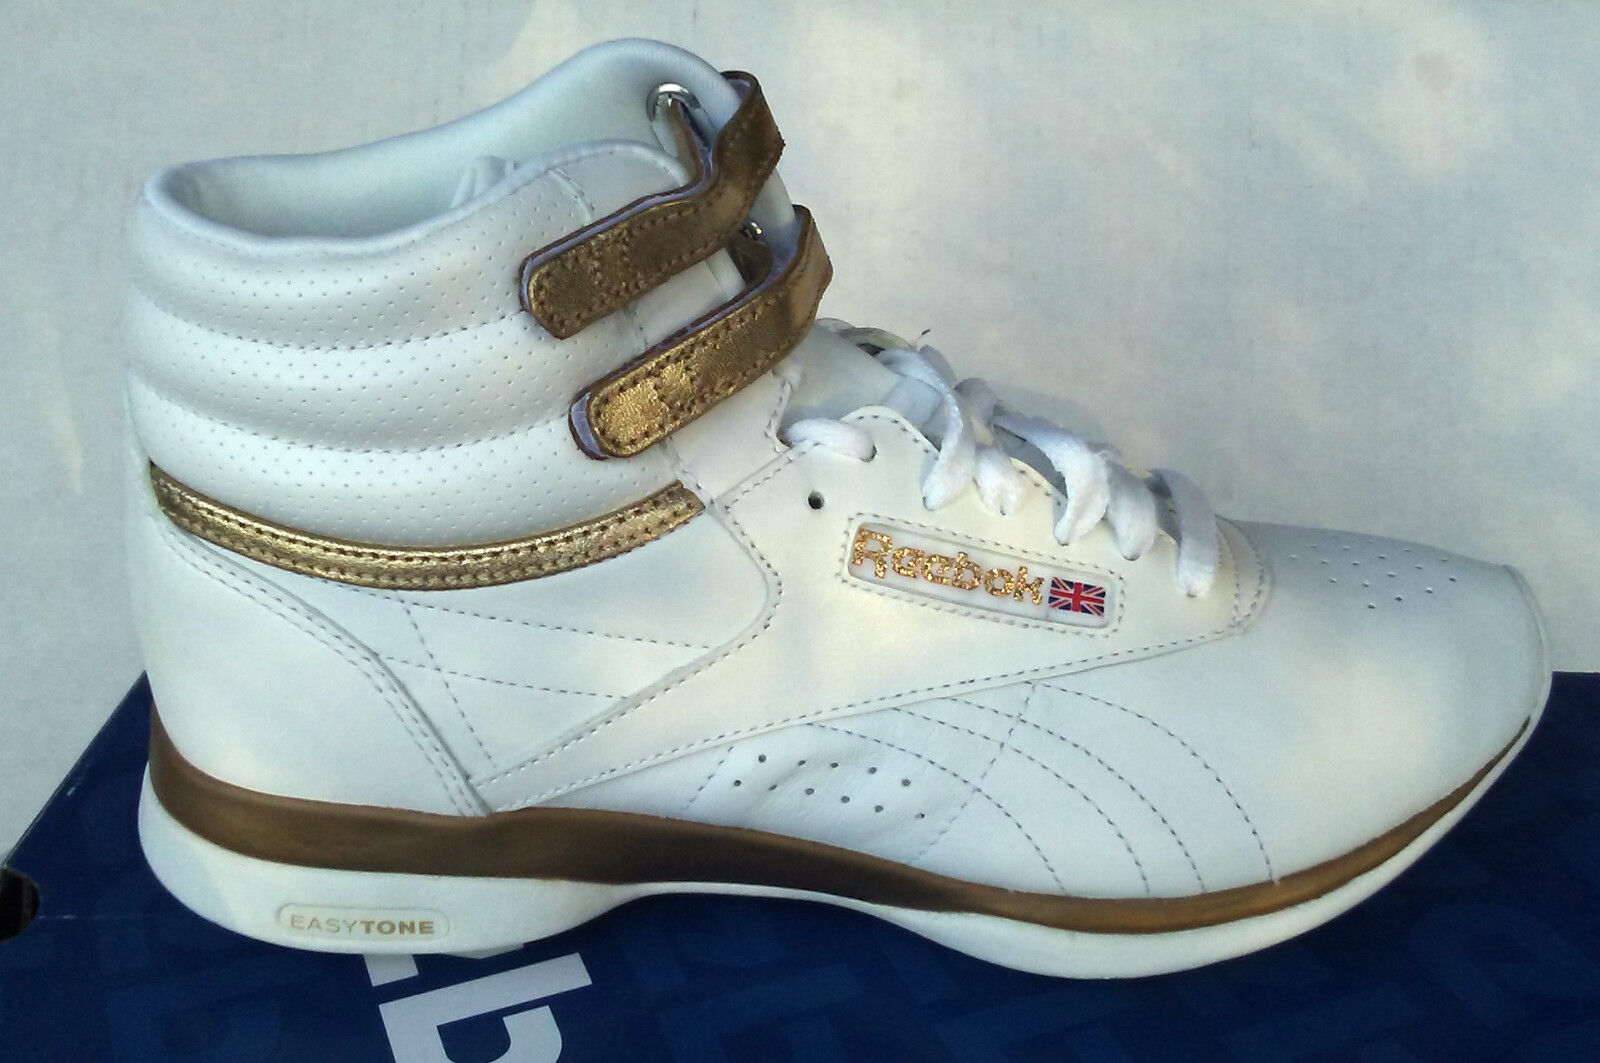 REEBOK CLASSIC aerobic FREESTYLE EASYTONE HIGH TOP blanc or or or chaussures femmes 771a99